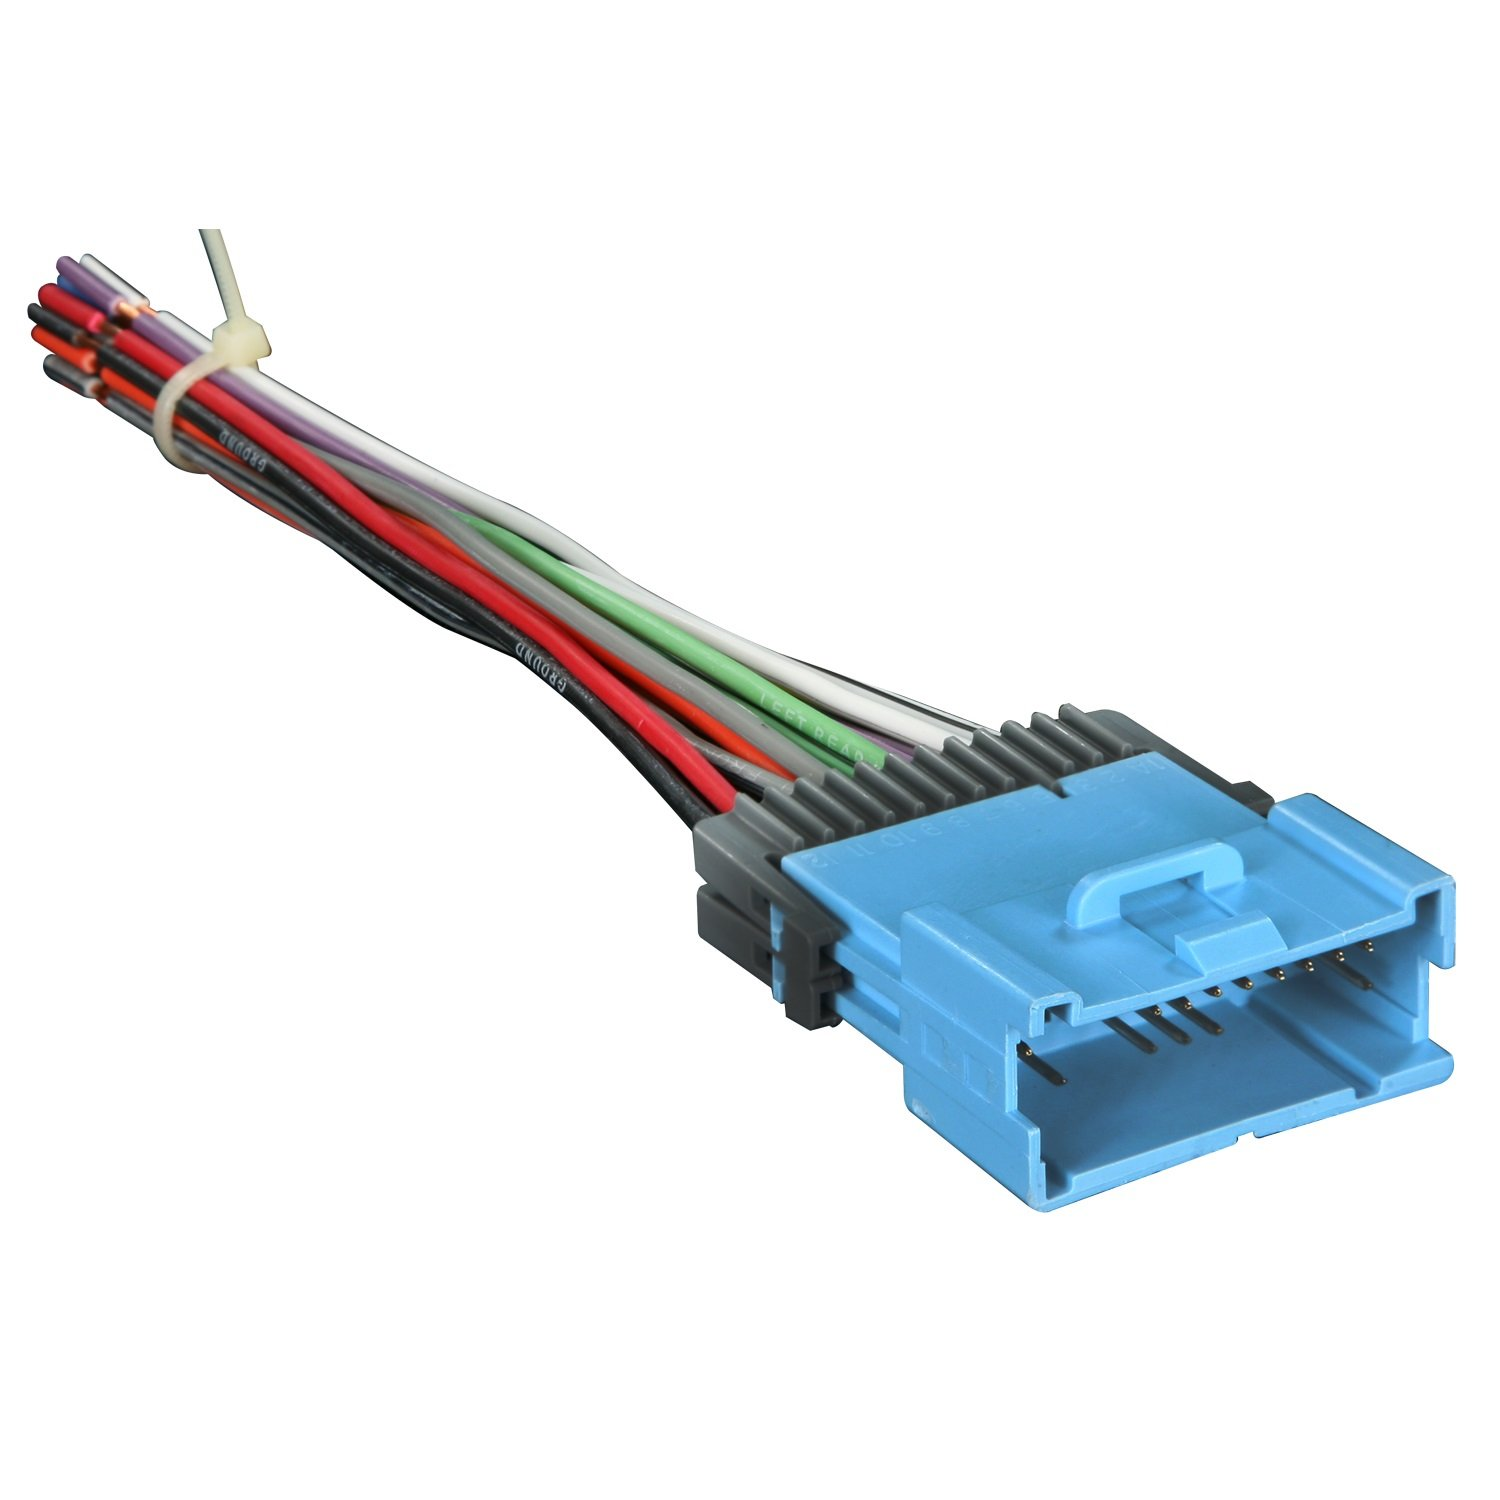 61ruWw 2aJL._SL1500_ amazon com metra 70 2102 radio wiring harness for gm 04 05 car  at mifinder.co